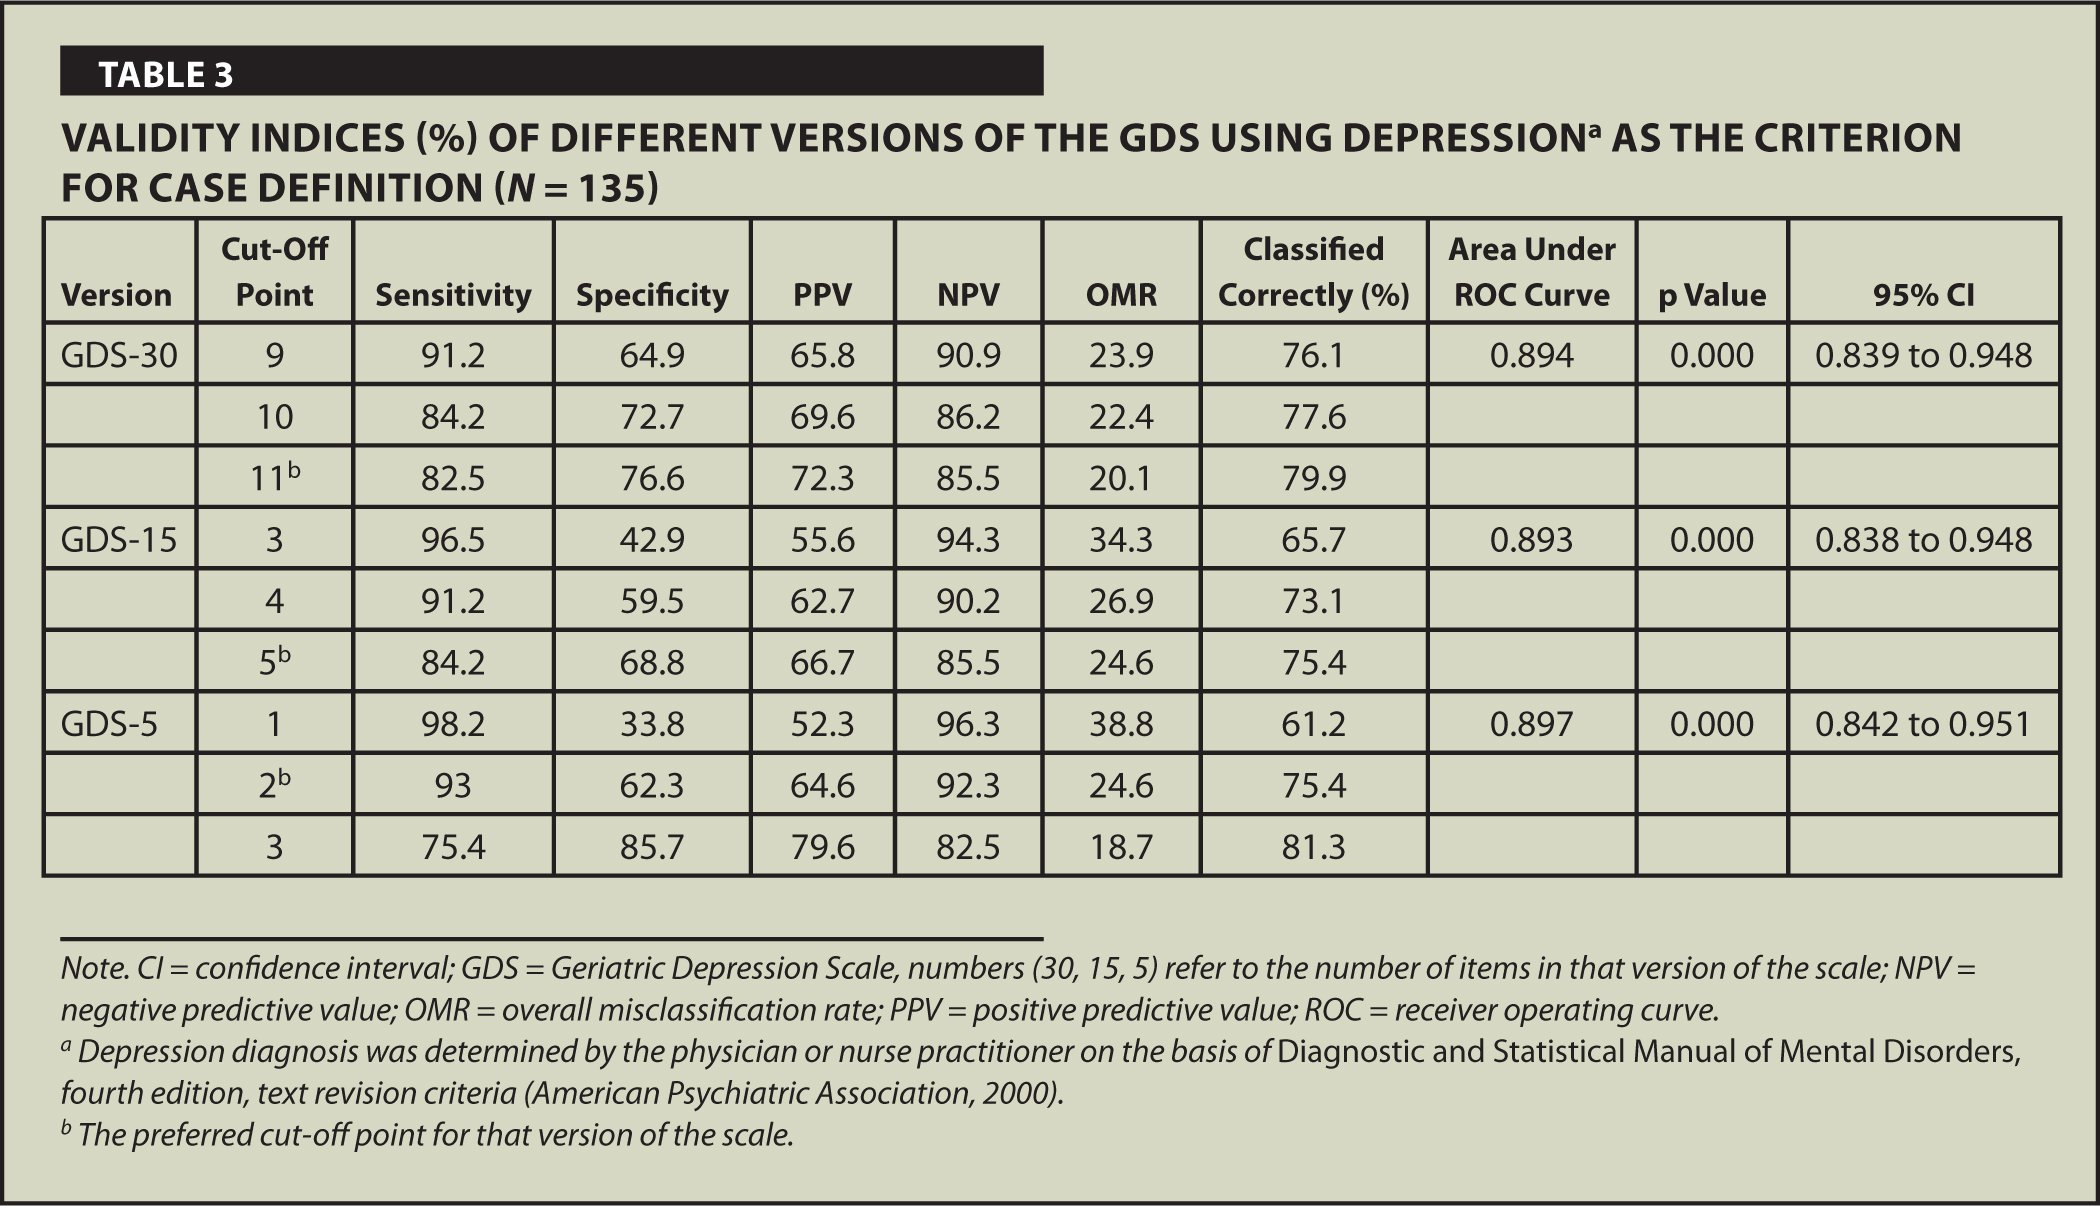 Validity Indices (%) of Different Versions of the GDS Using Depressiona as the Criterion for Case Definition (N = 135)